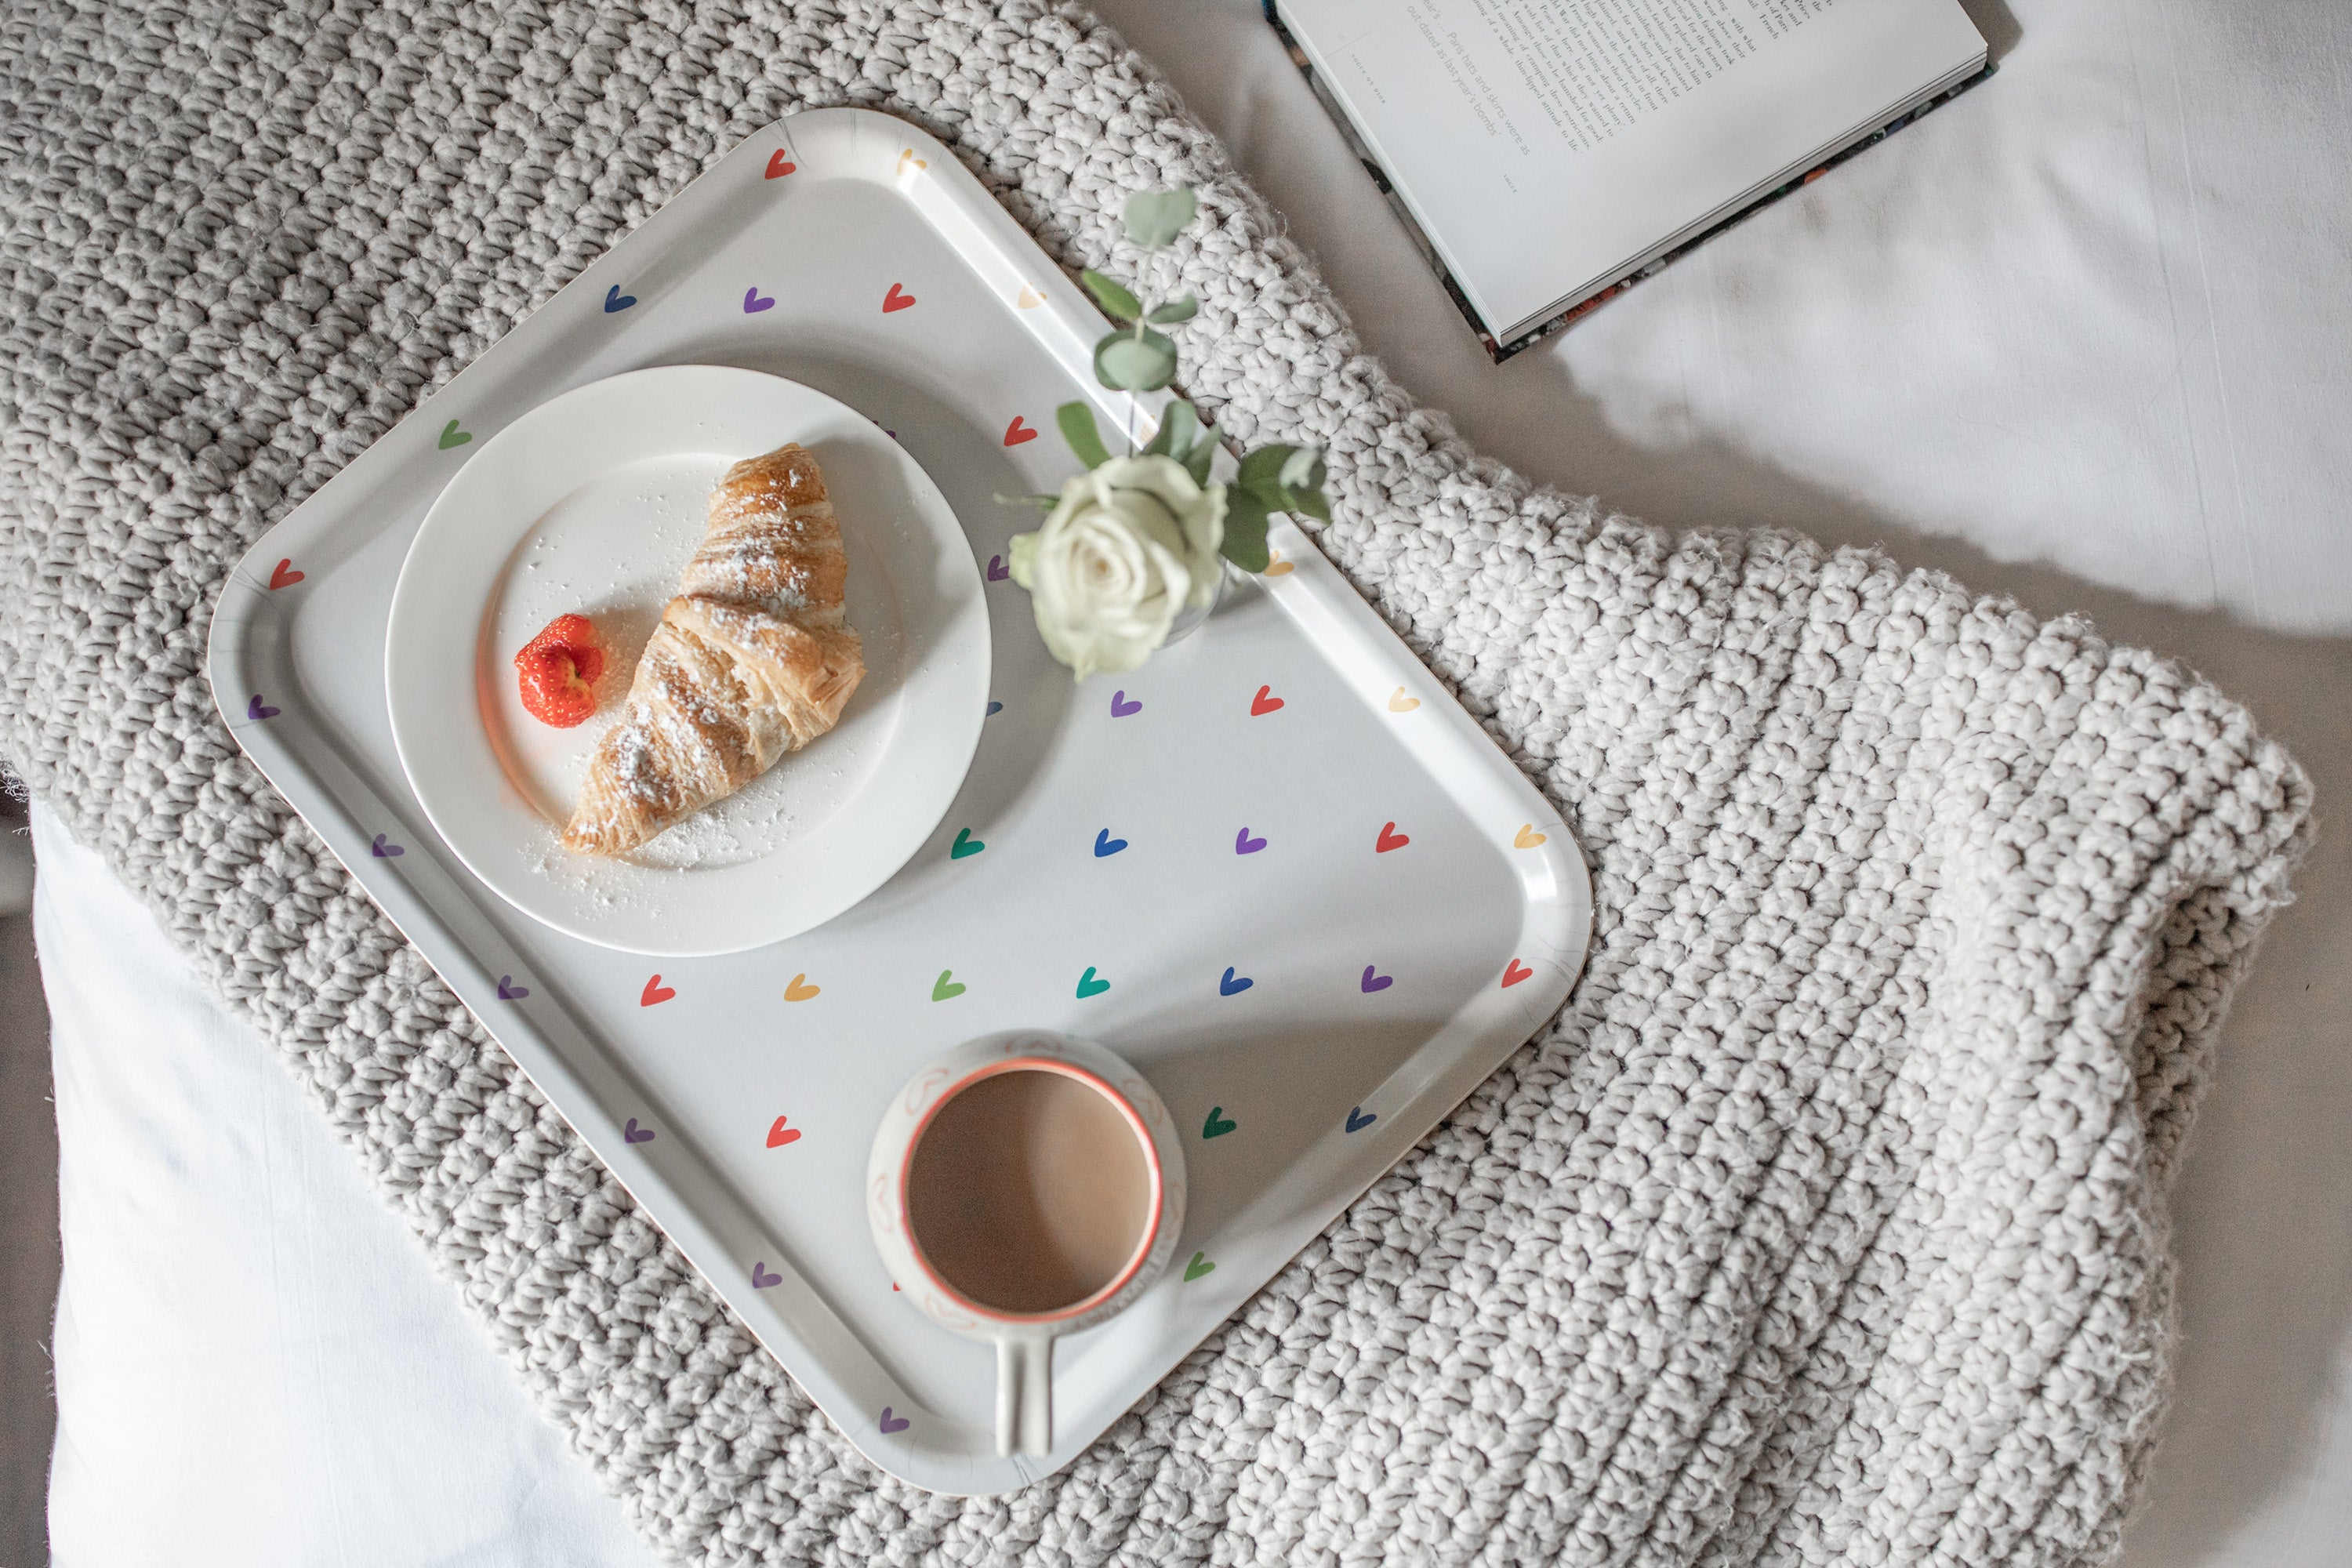 Mother's Day Ideas by Sophie Allport - 8 ways to make it special